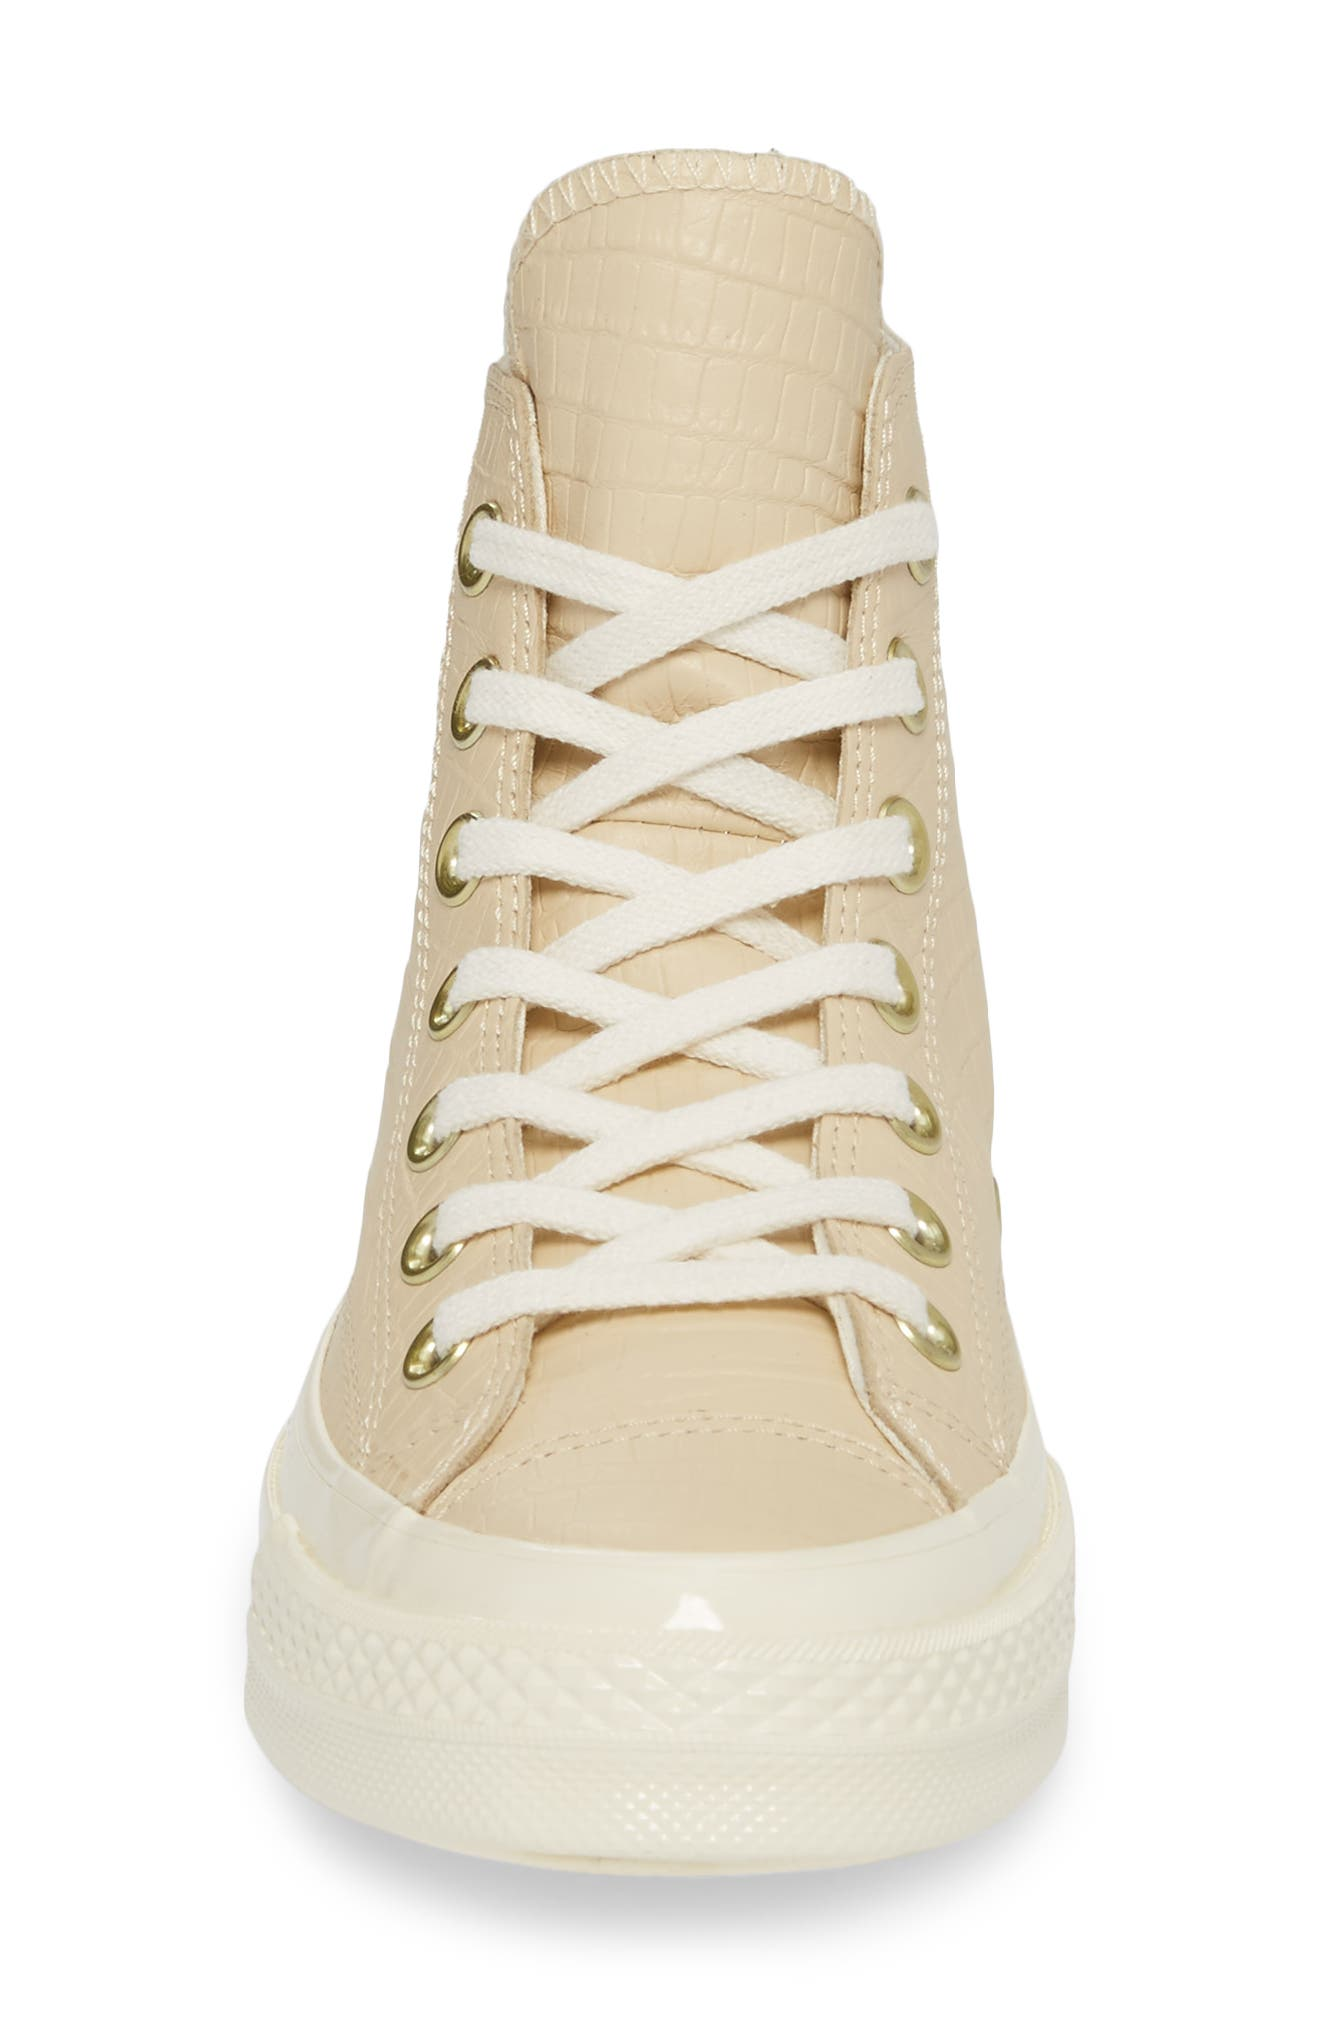 Chuck Taylor<sup>®</sup> All Star<sup>®</sup> CT 70 Reptile High Top Sneaker,                             Alternate thumbnail 4, color,                             Light Twine